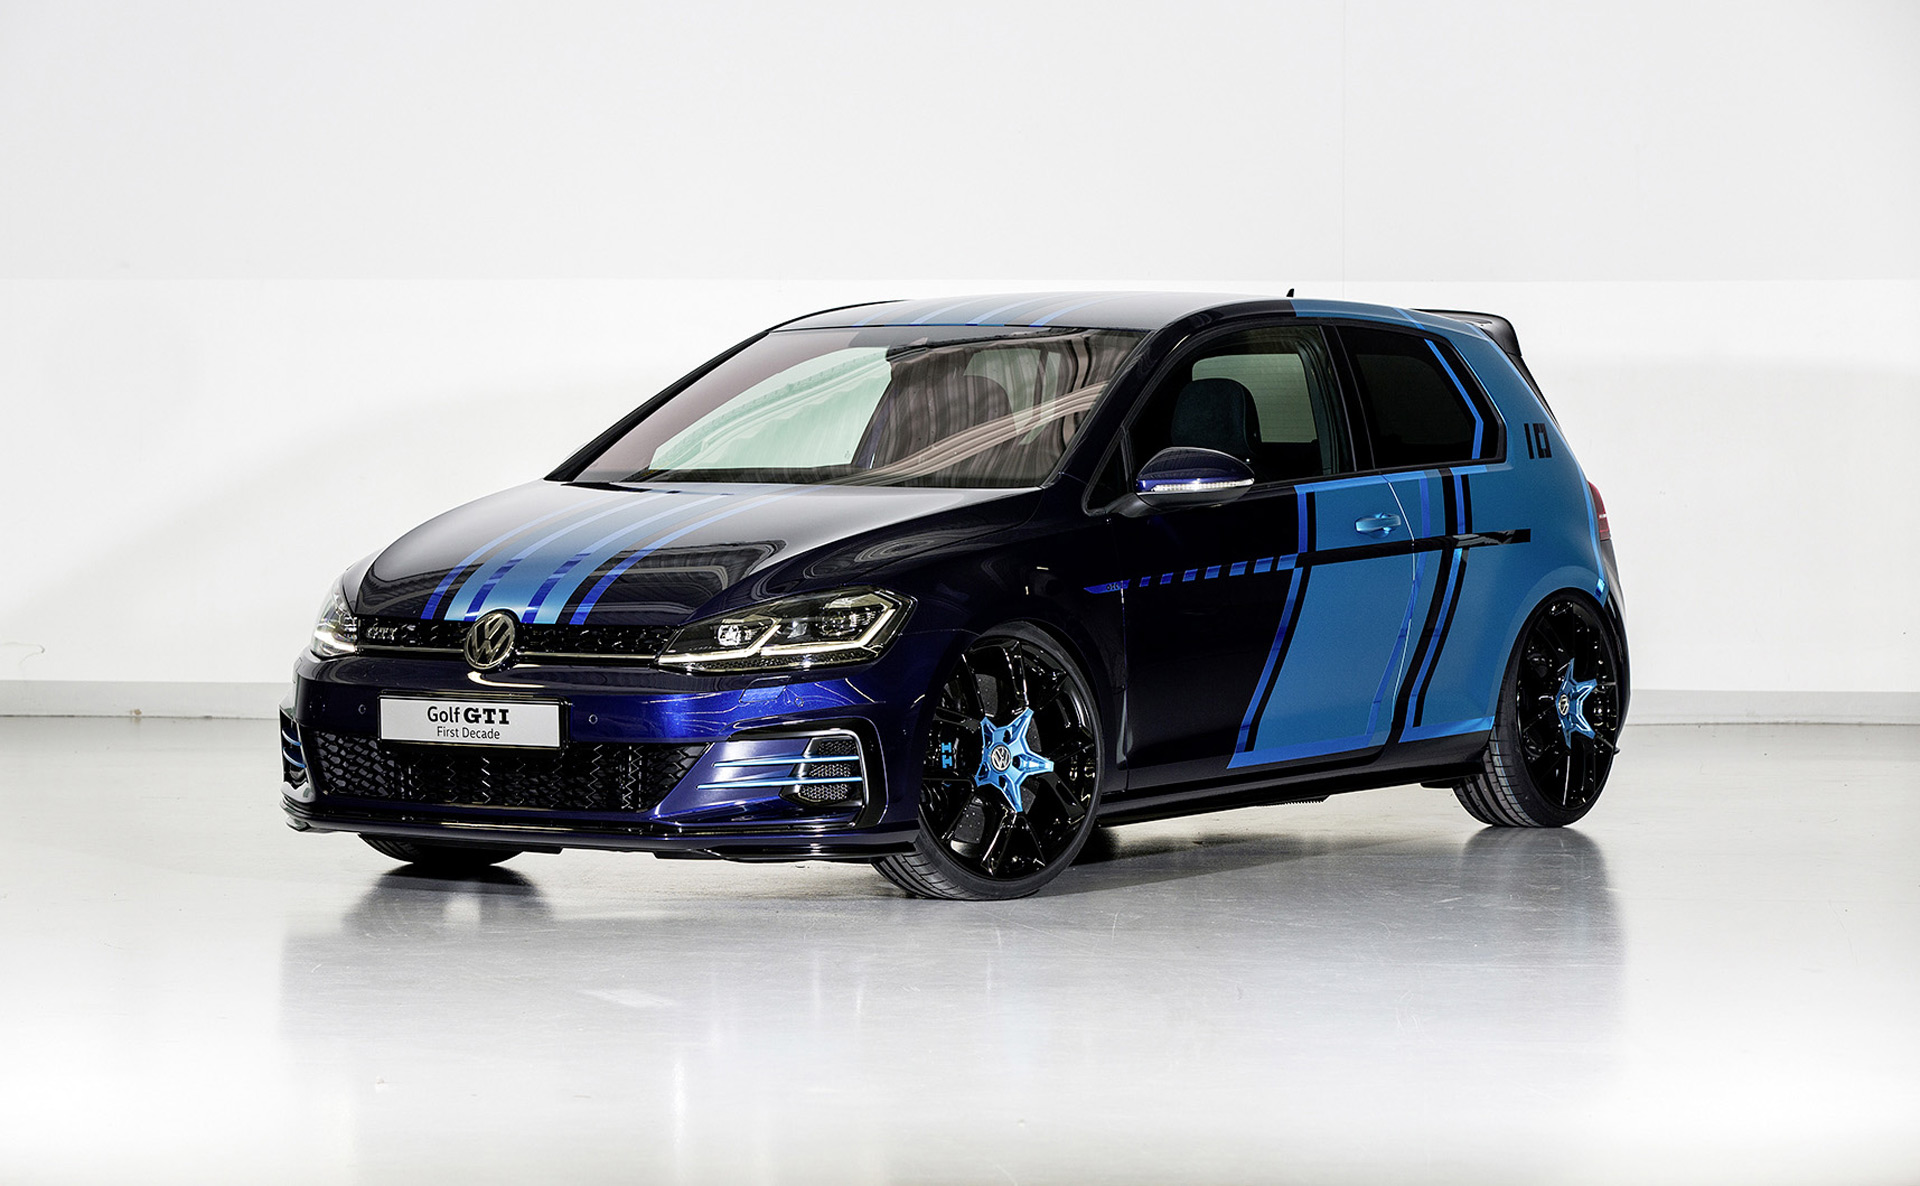 vw reveals gti hybrid concept with rear axle electric motor. Black Bedroom Furniture Sets. Home Design Ideas